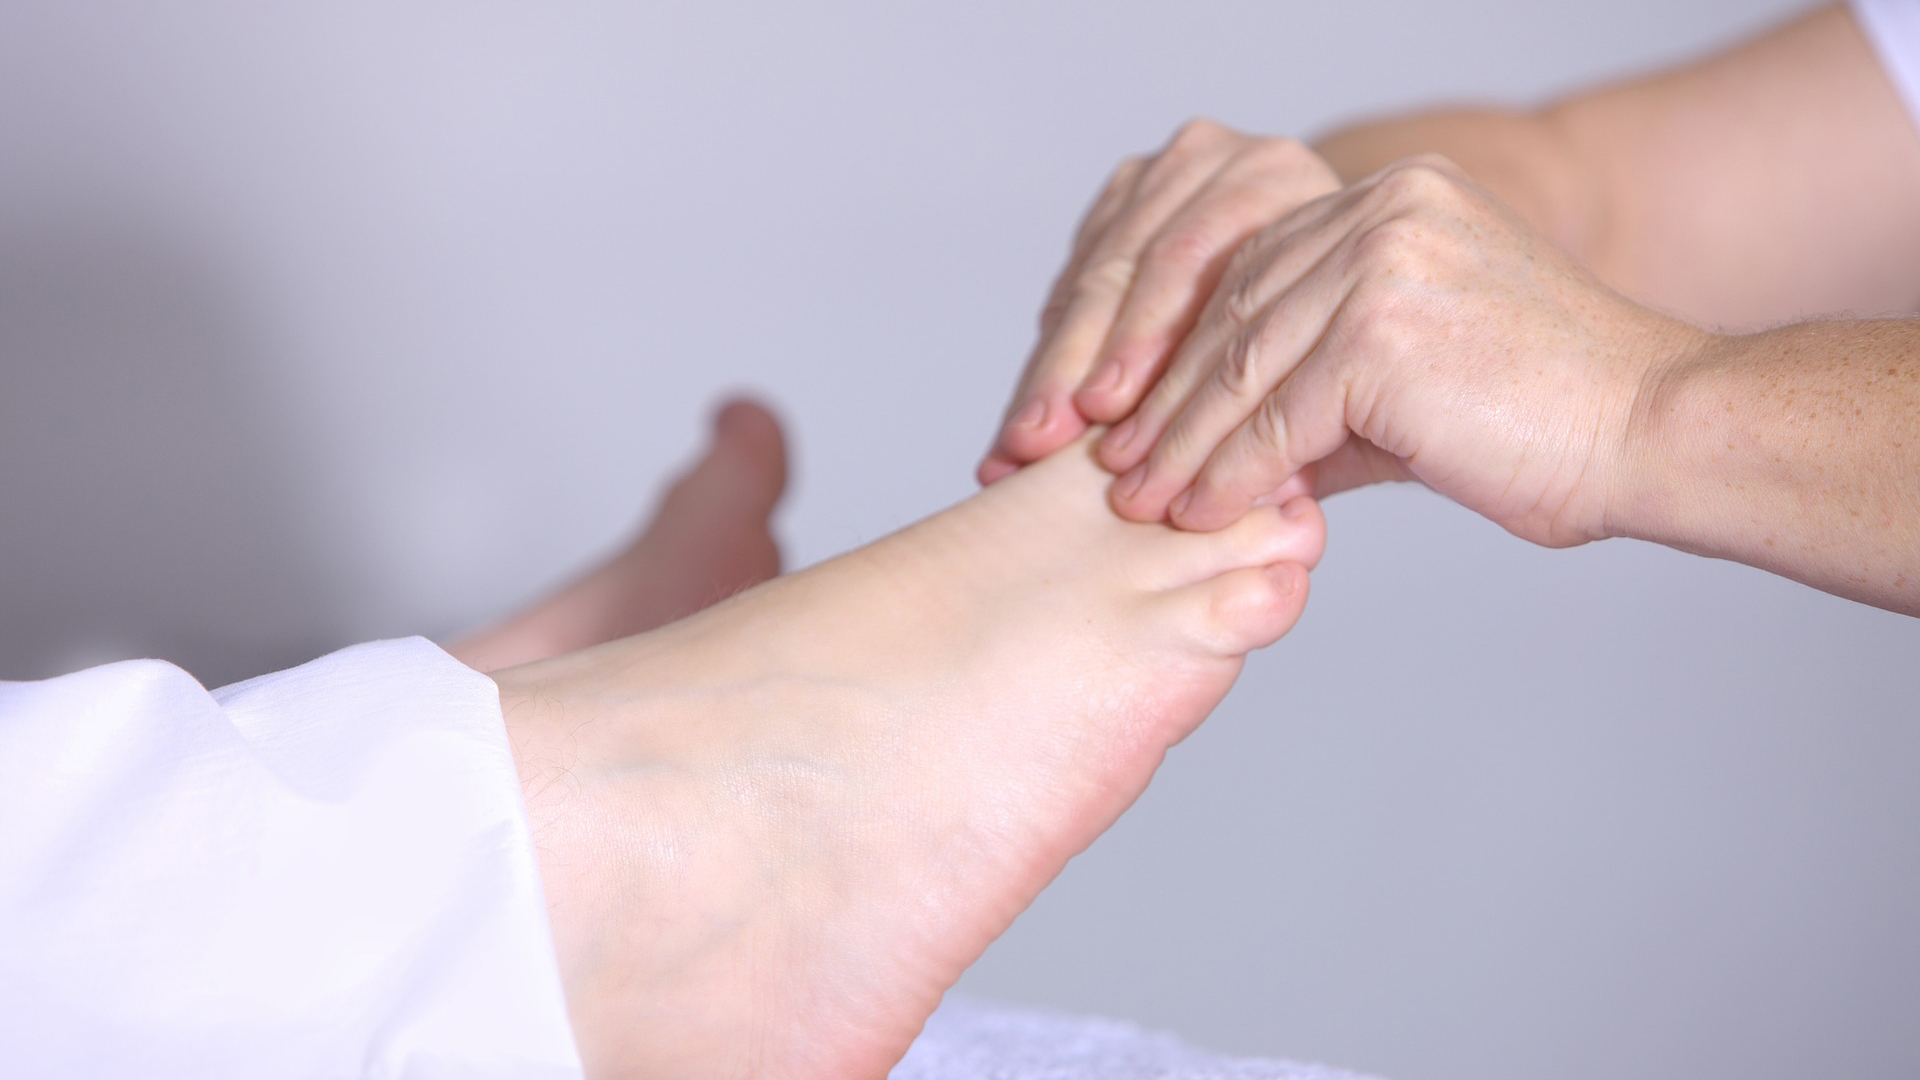 Routine Footcare